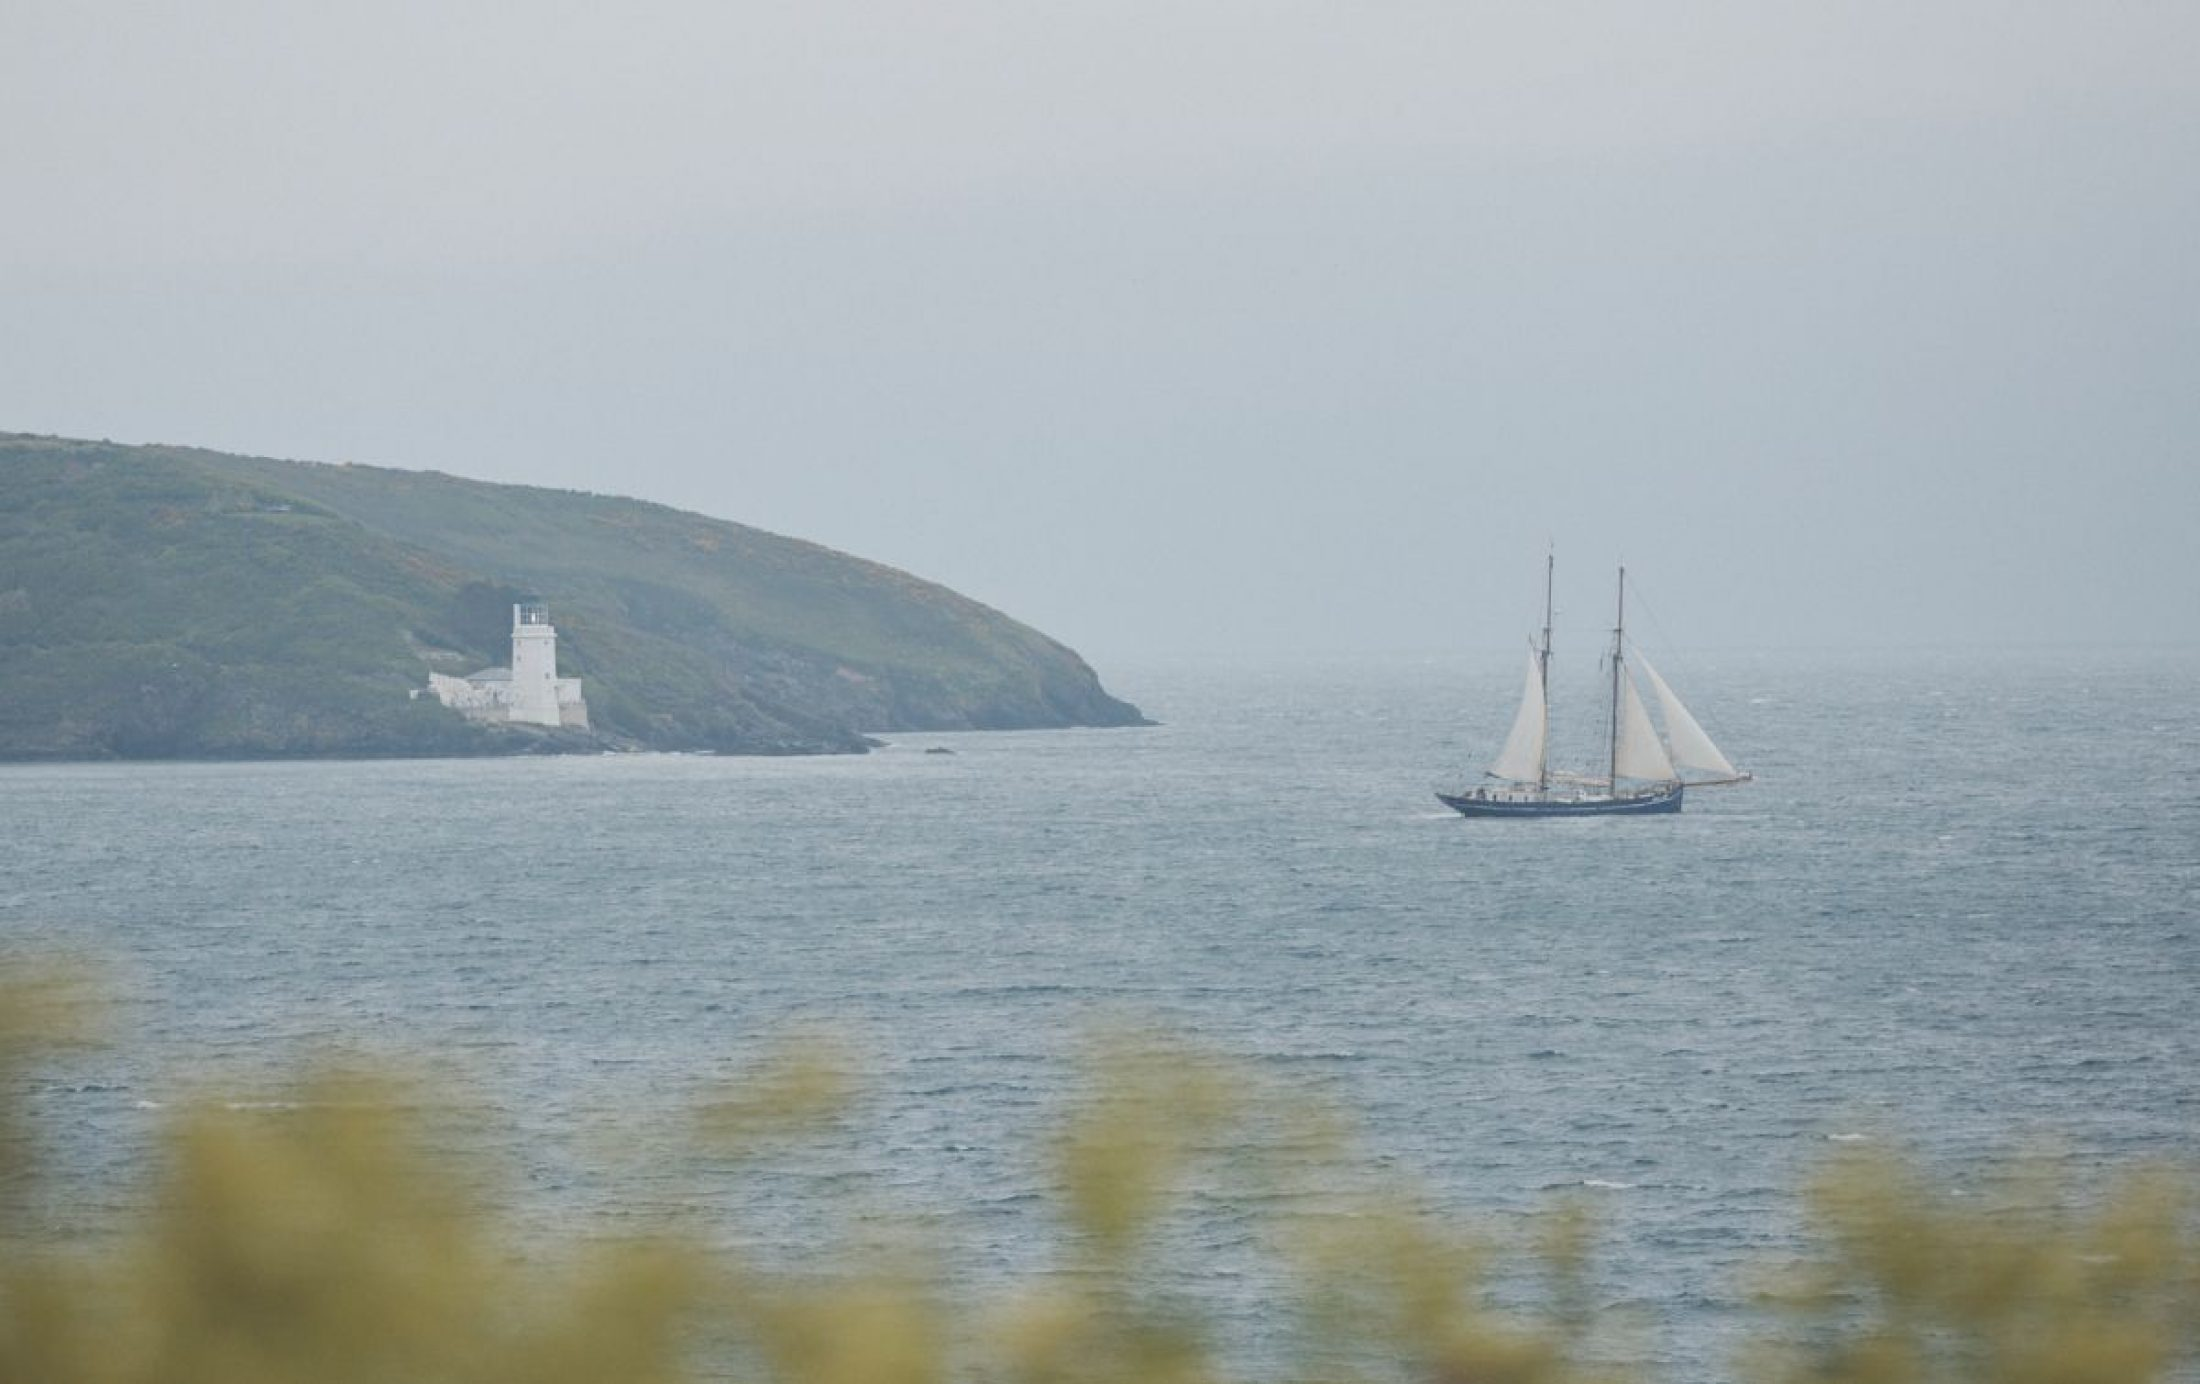 Pictured amid sea spray, De Gallant took three months to sail from Colombia to Cornwall